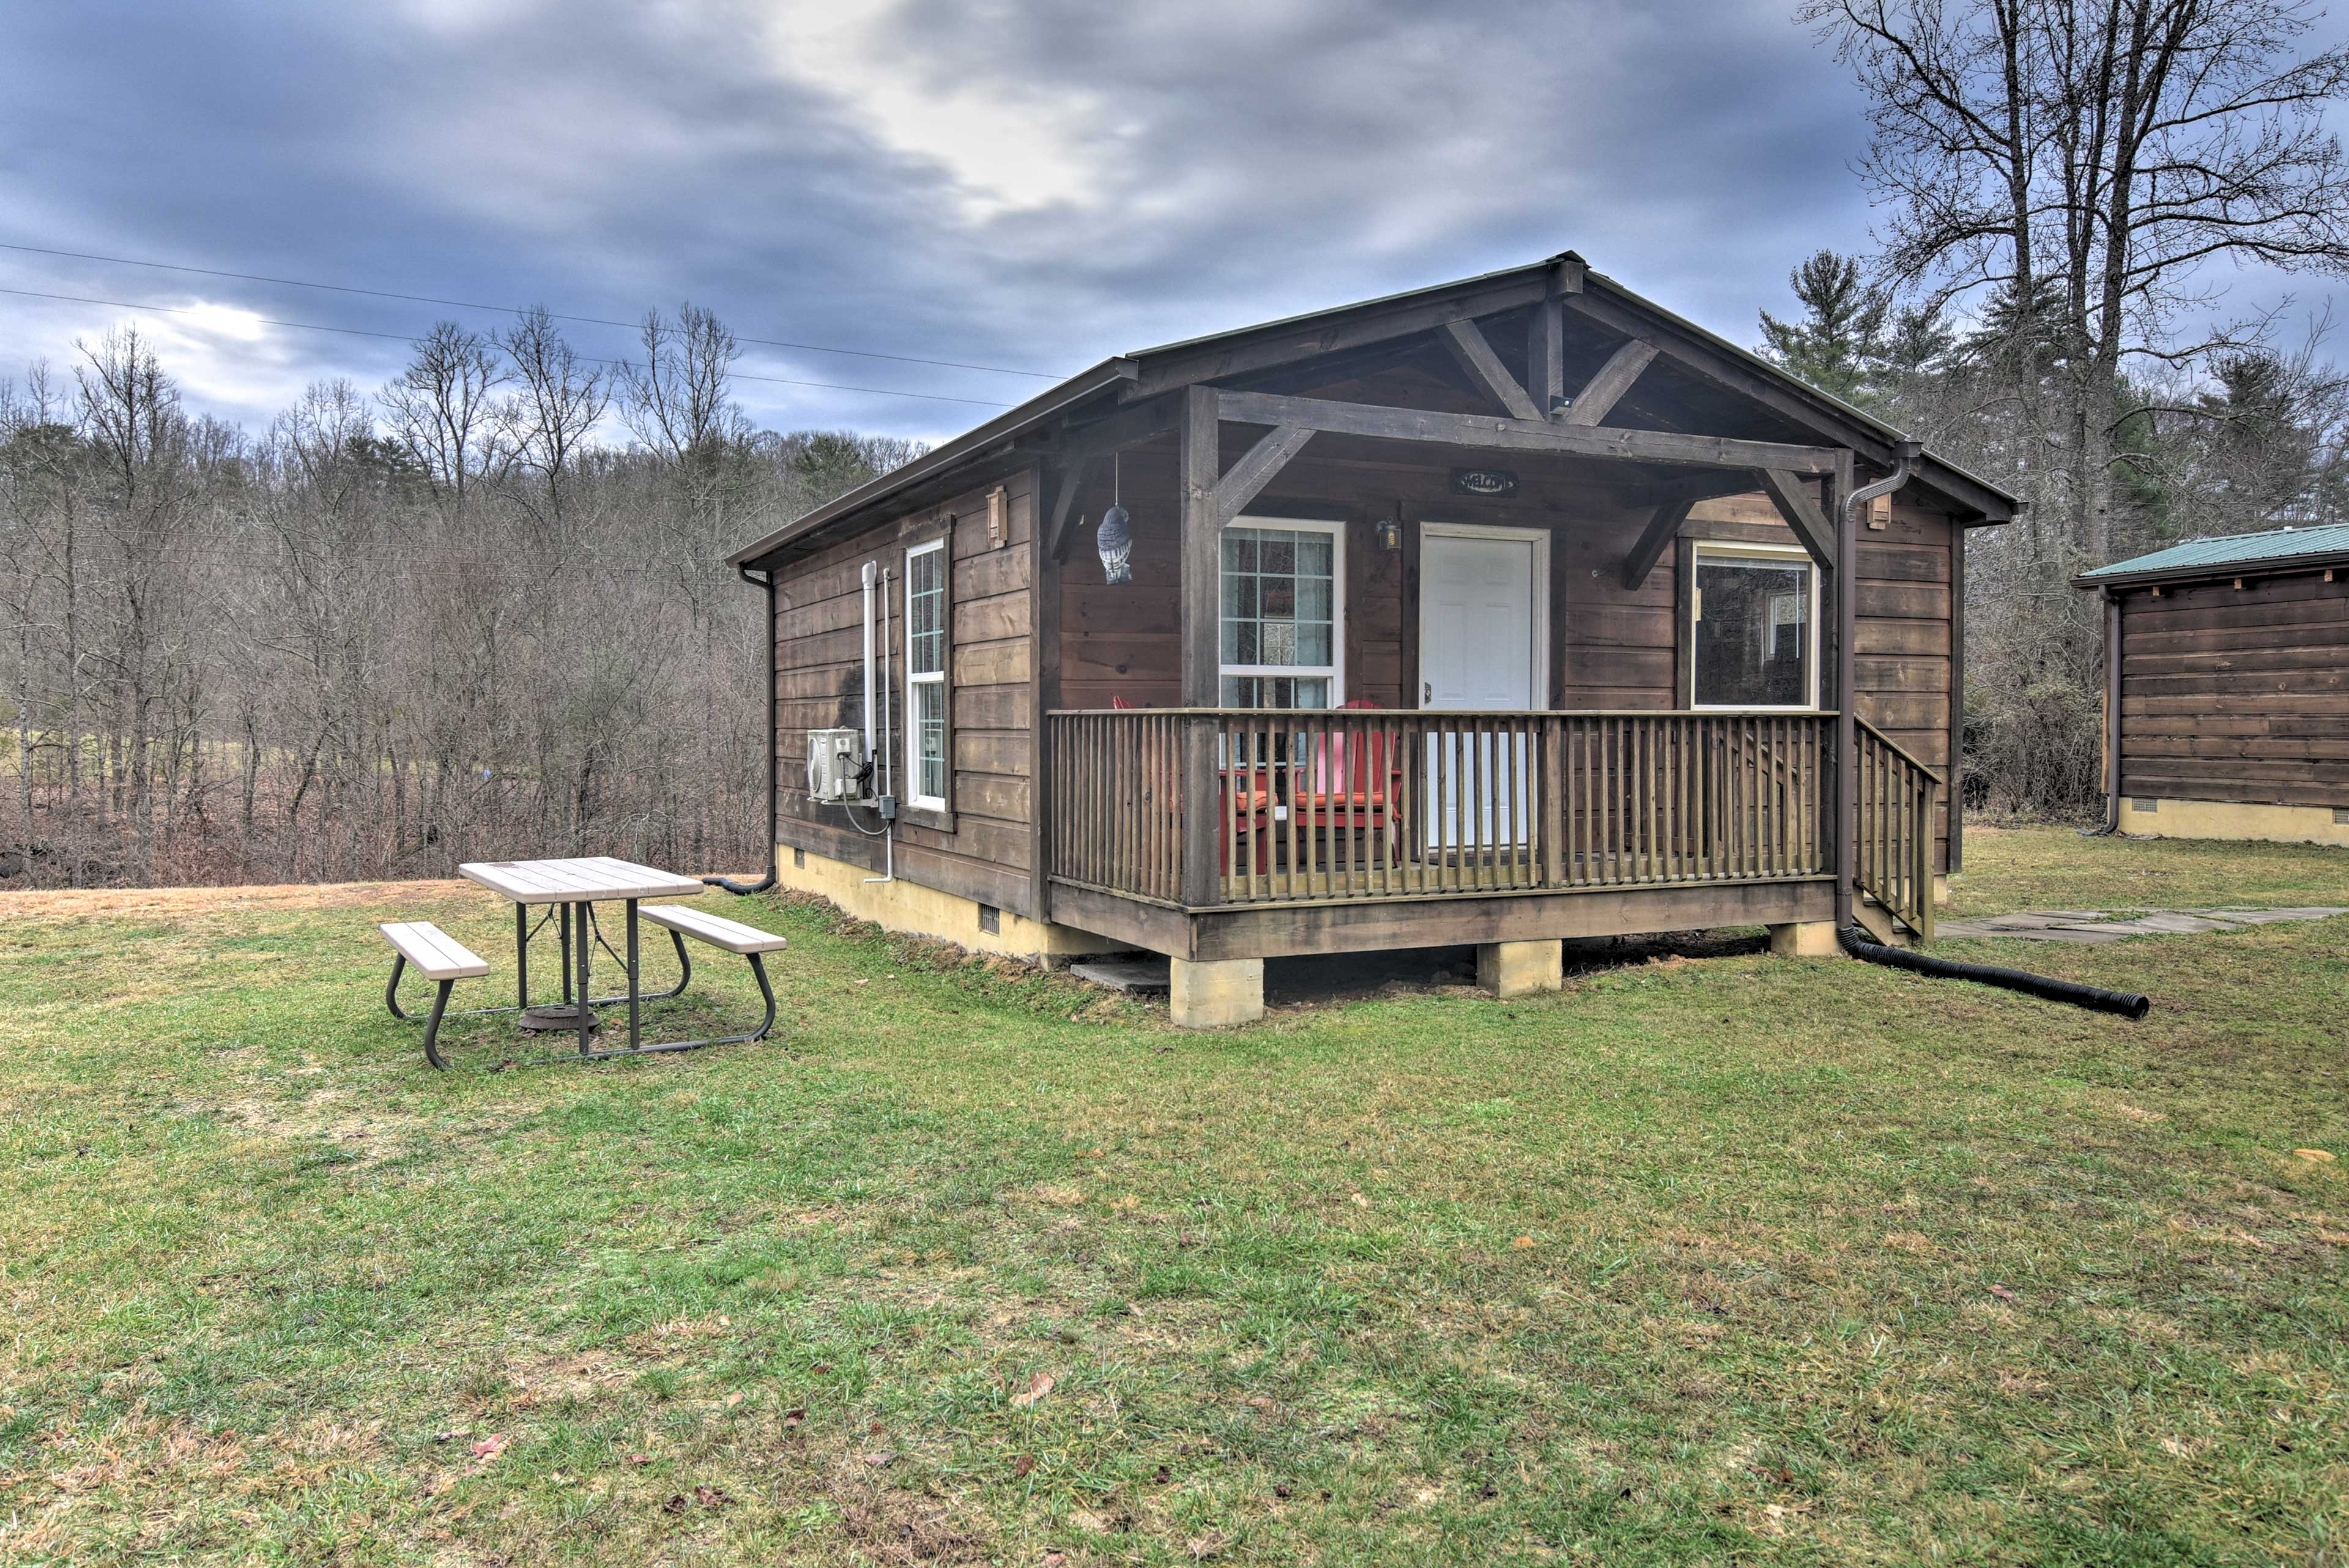 The cabin features 2 bedrooms and 1 bathroom.